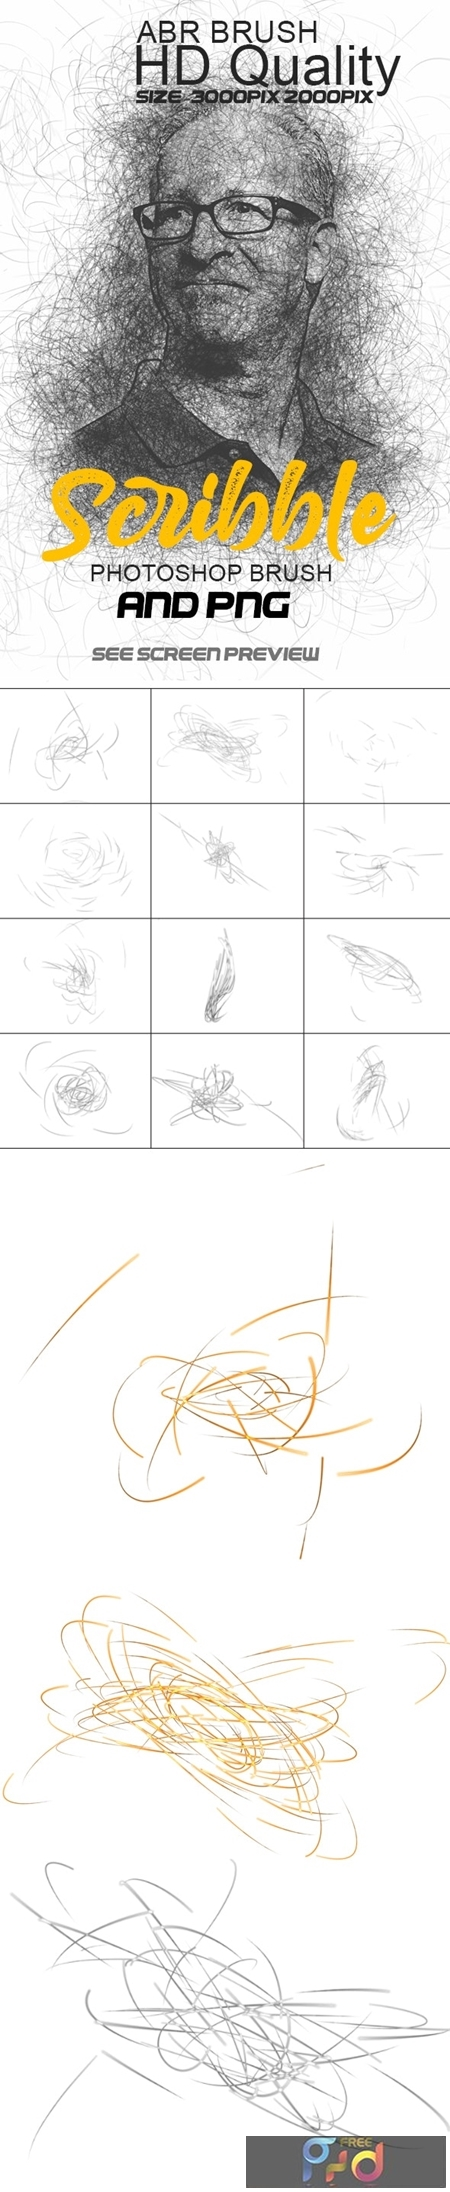 Scribble Photoshop Brushes 25748103 1